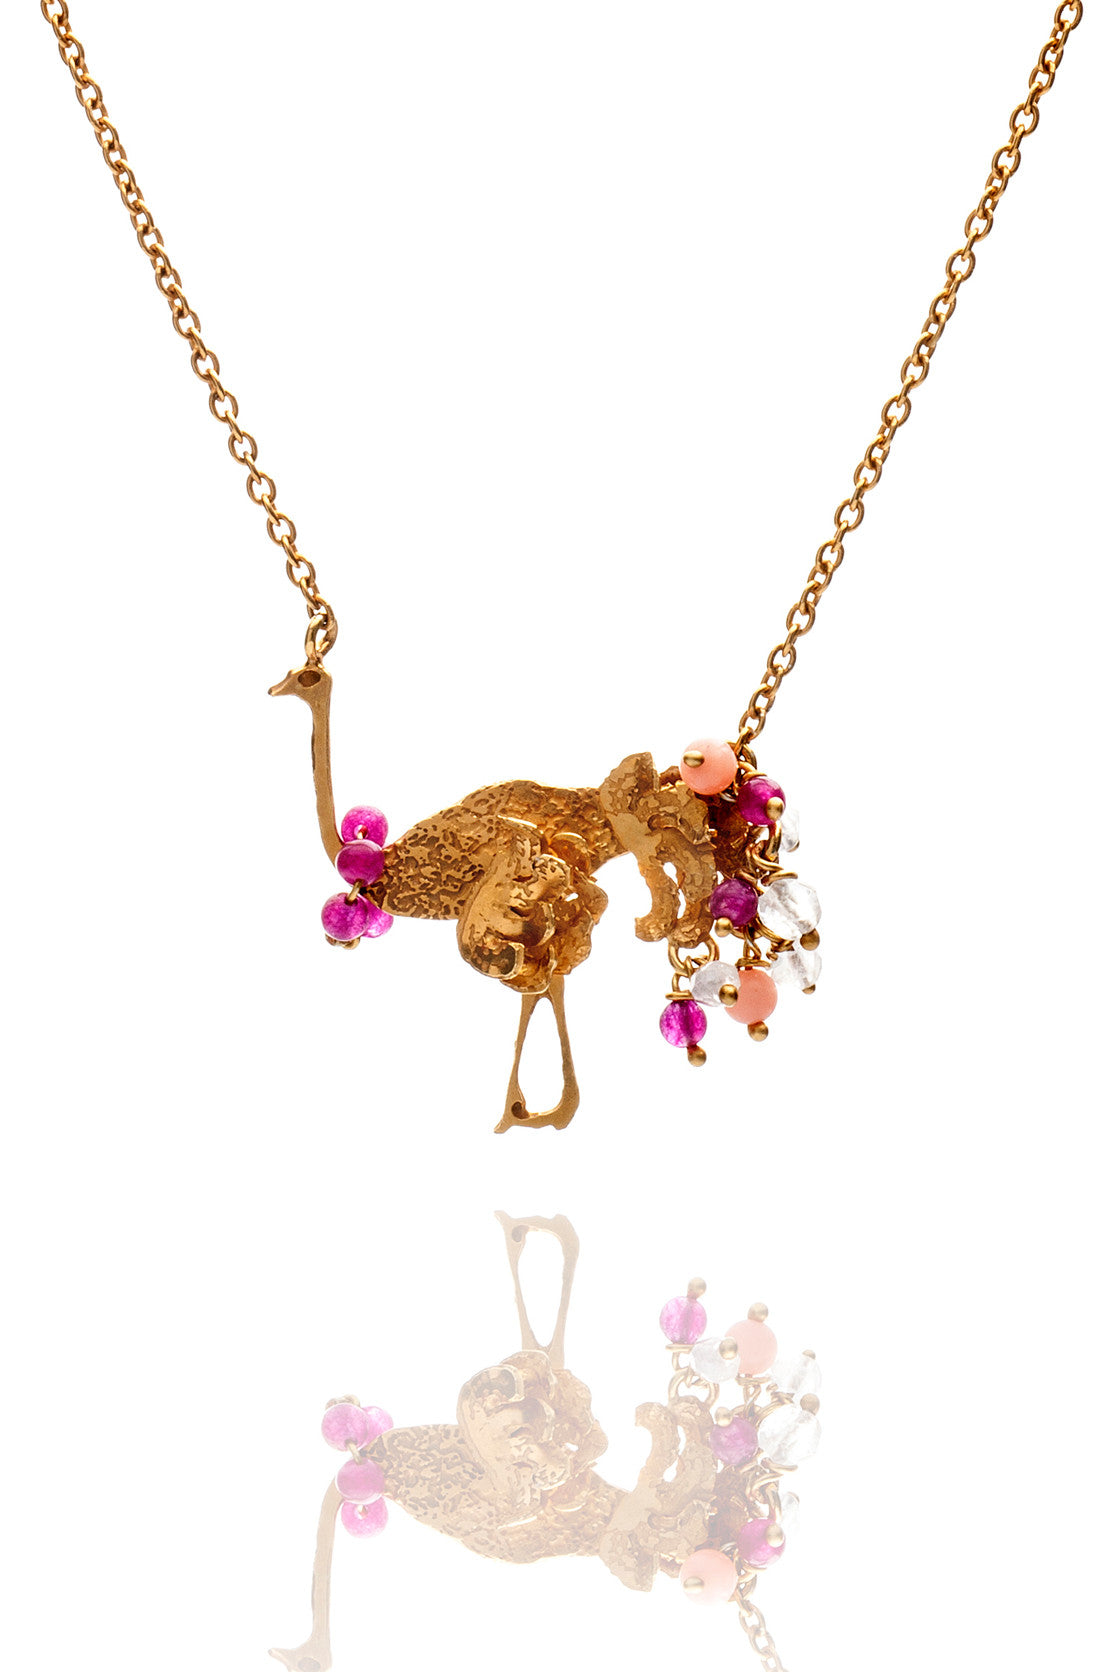 22ct Gold Vermeil with pinks